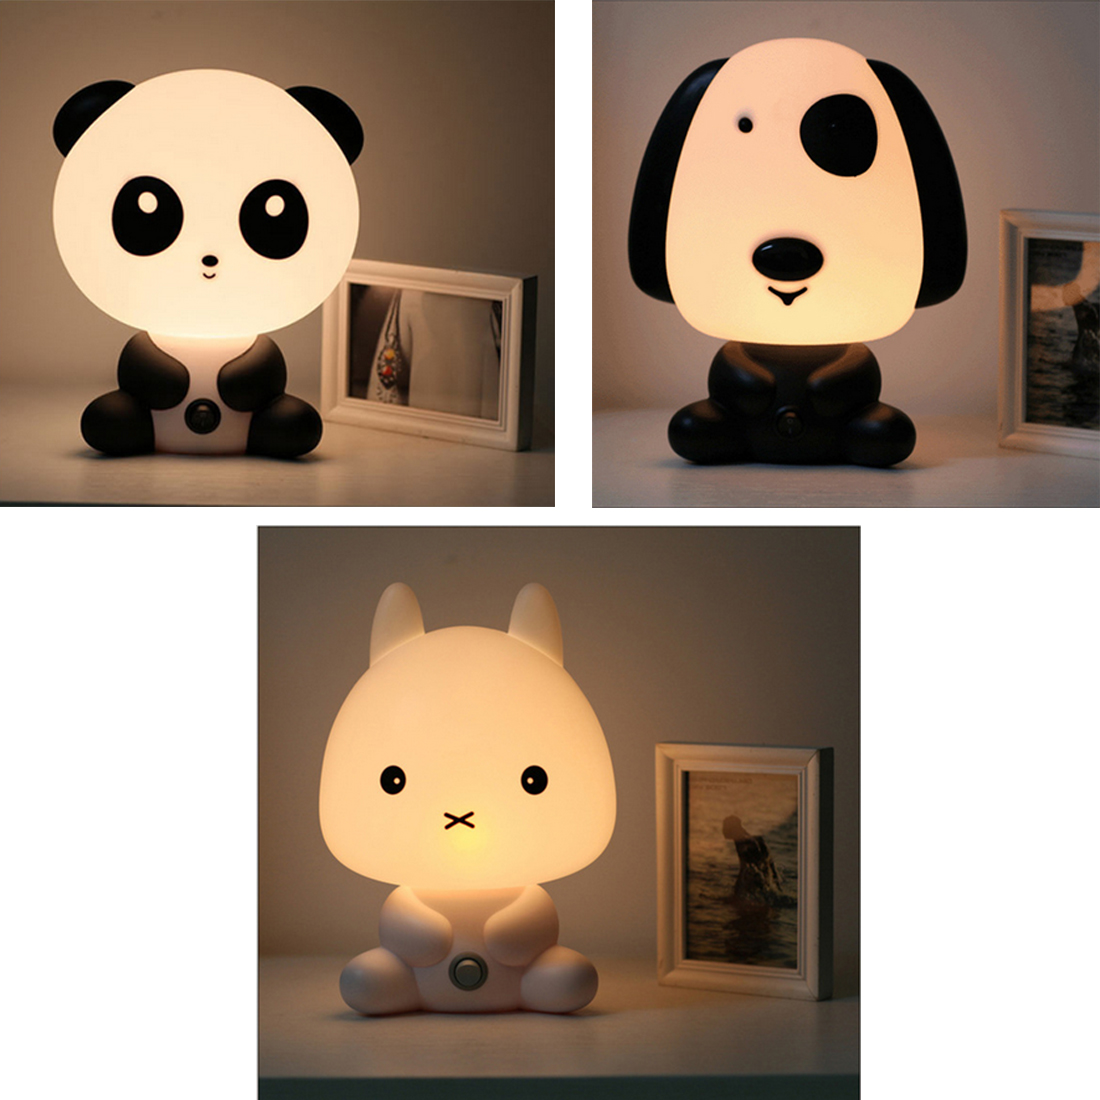 Hot EU Plug Baby Bedroom Lamps Night Light Cartoon Pets Rabbit Panda PVC Plastic Sleep Led Kid Lamp Bulb Nightlight for Children